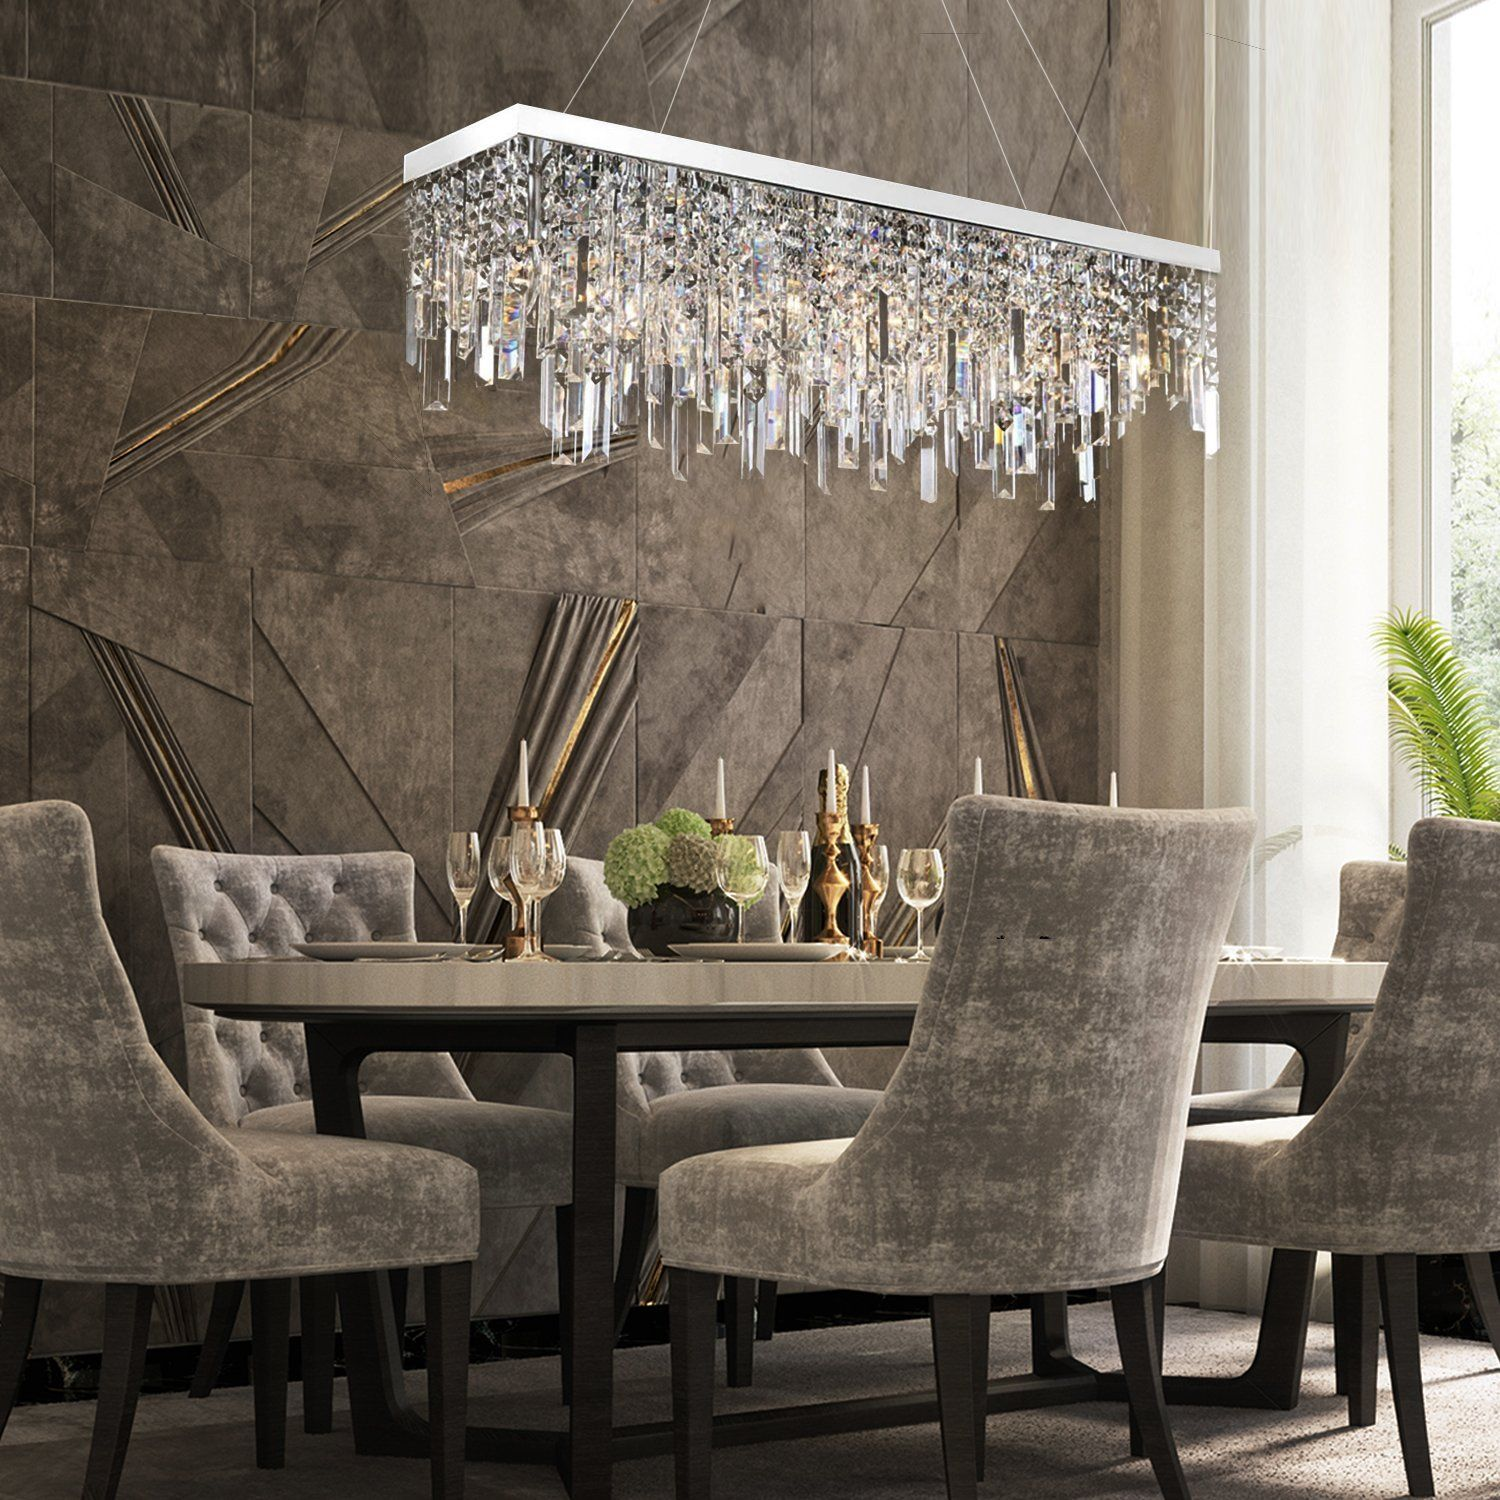 Rectangular Crystal Chandelier With Linear Design Dining Room Luxury Dining Room Decor Contemporary Dining Room Lighting Crystal Chandelier Dining Room